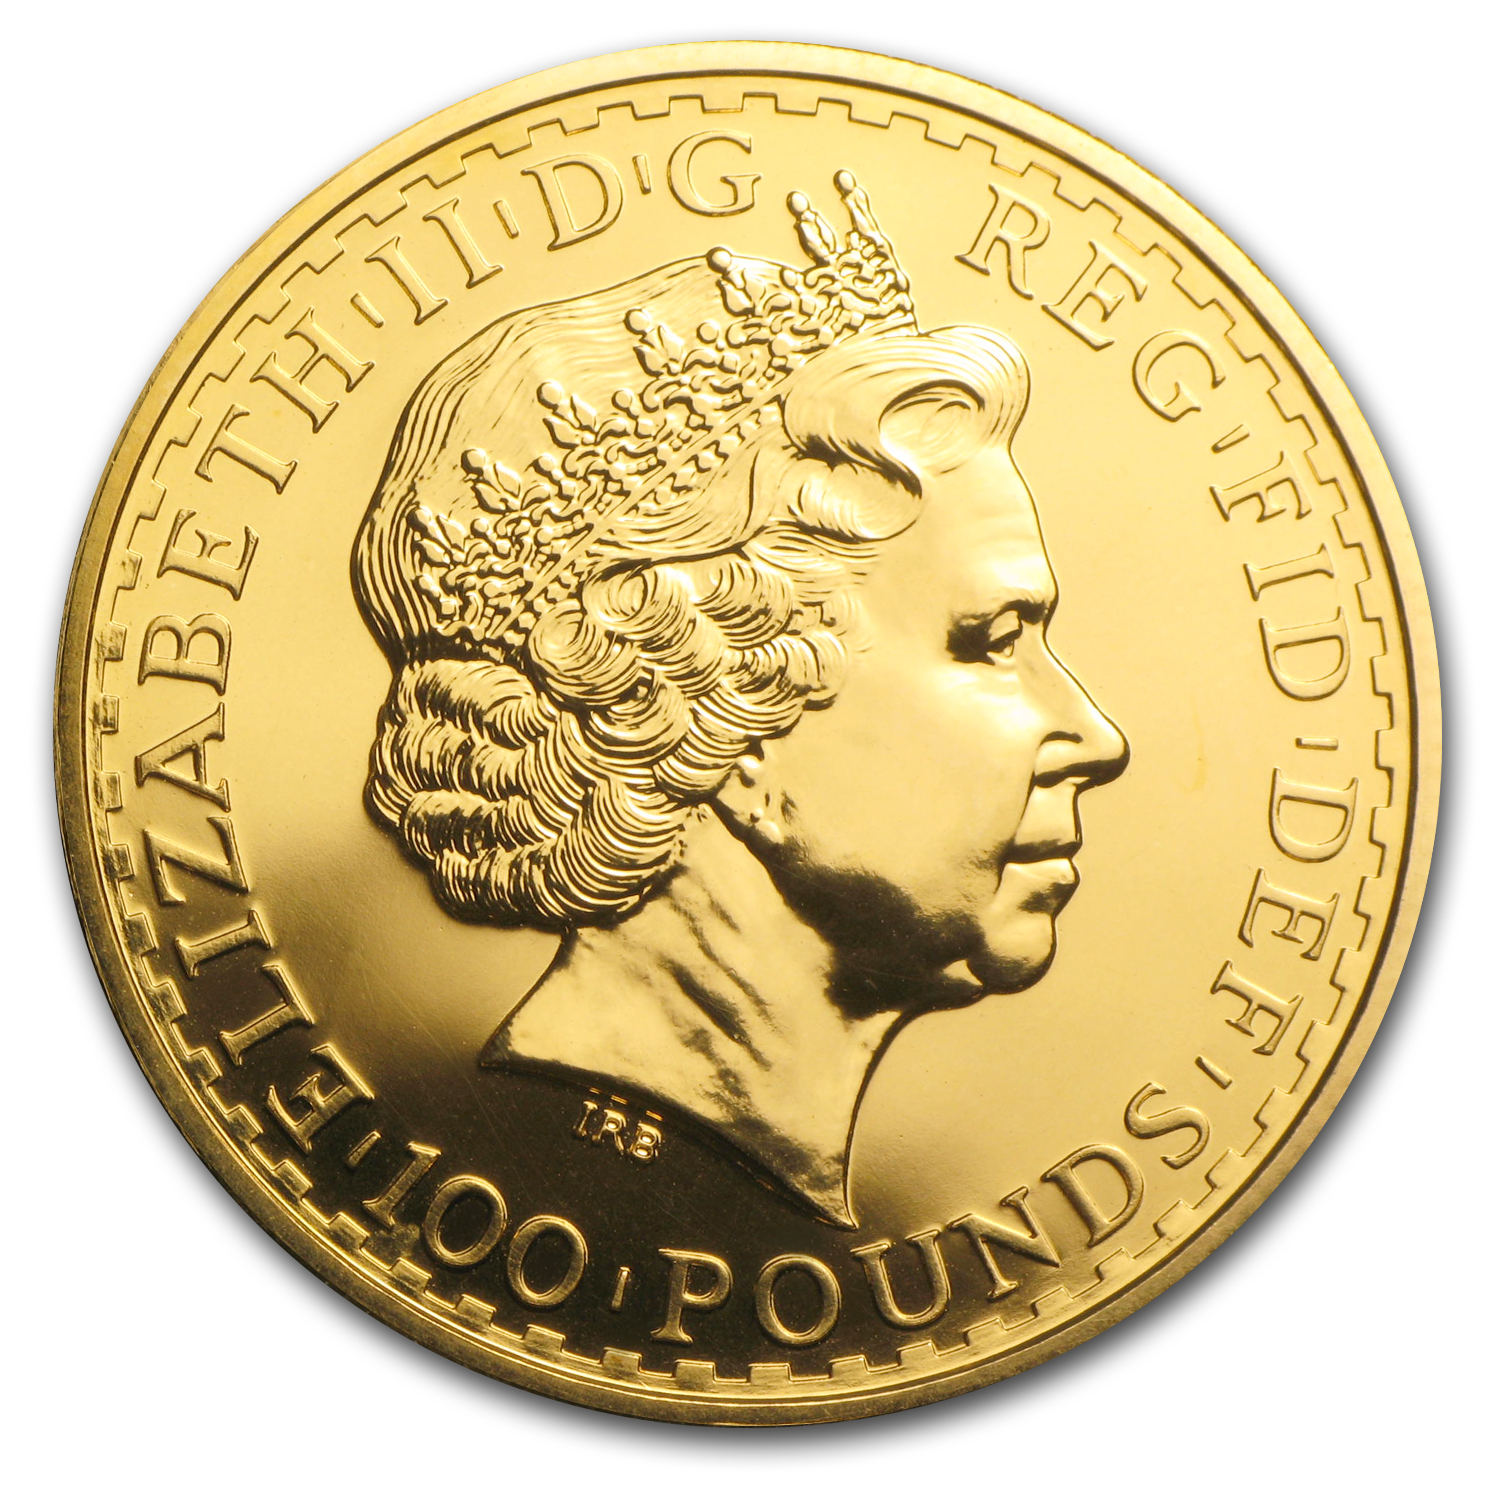 2001 1 oz Gold Britannia - Brilliant Uncirculated